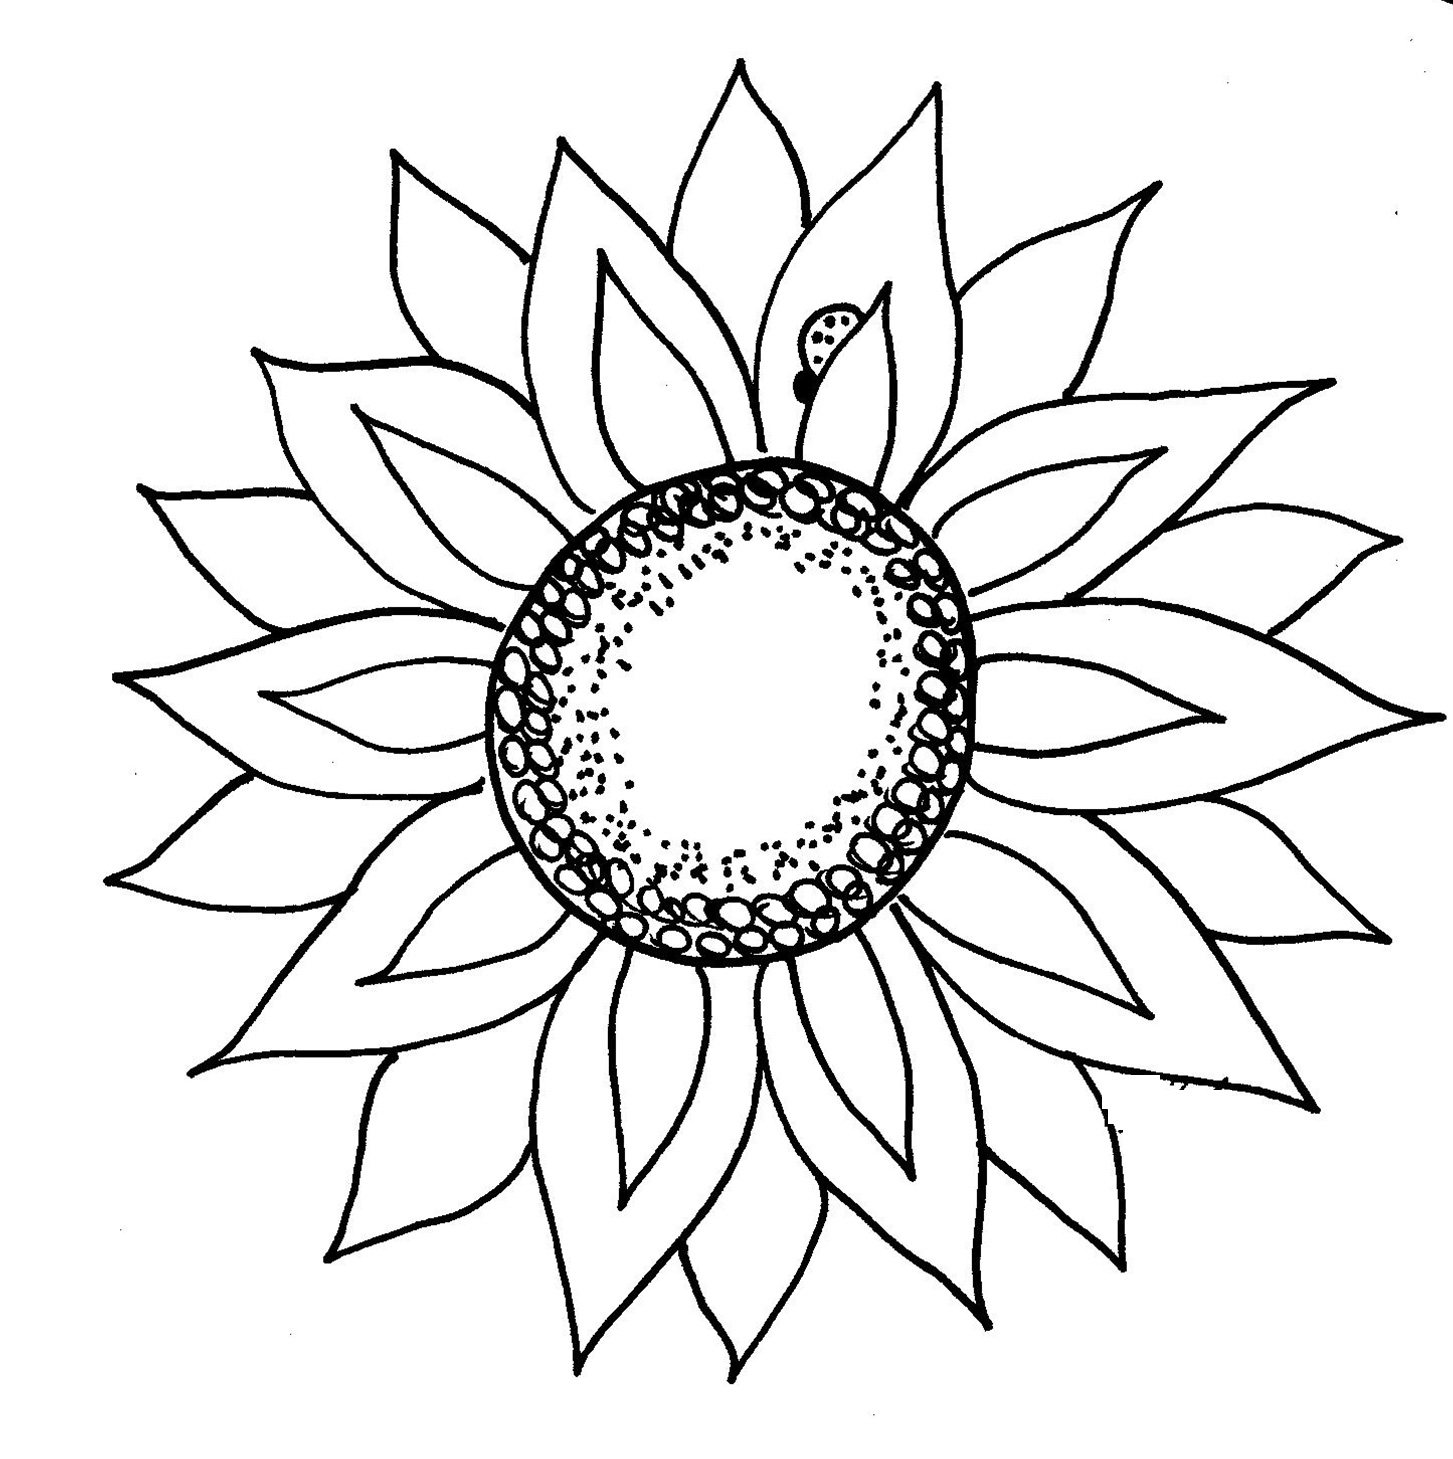 Free Black Sunflower Cliparts, Download Free Clip Art, Free.